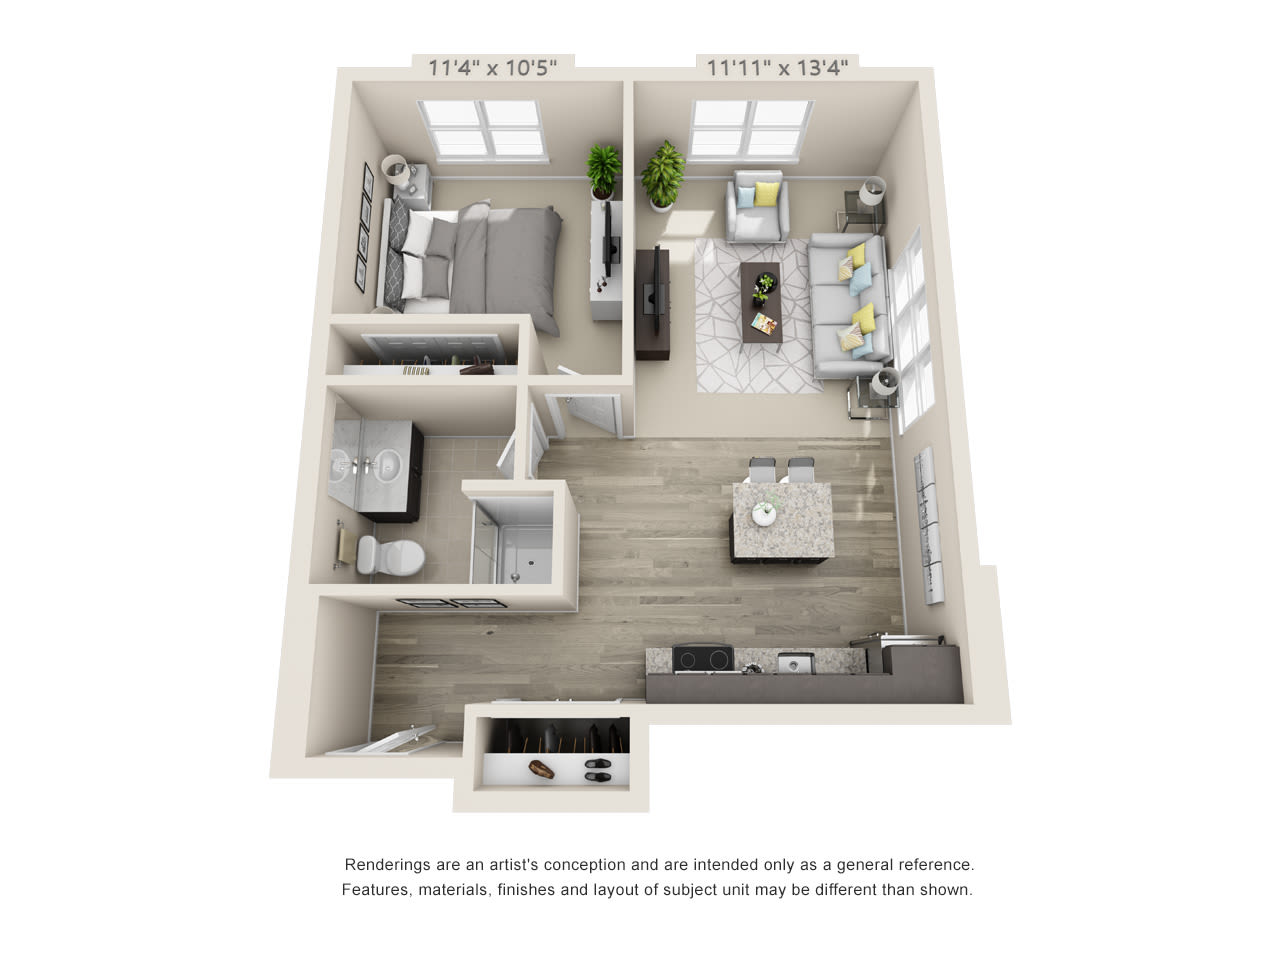 Assisted living one bedroom floor plan at Talamore Senior Living in St. Cloud, Minnesota